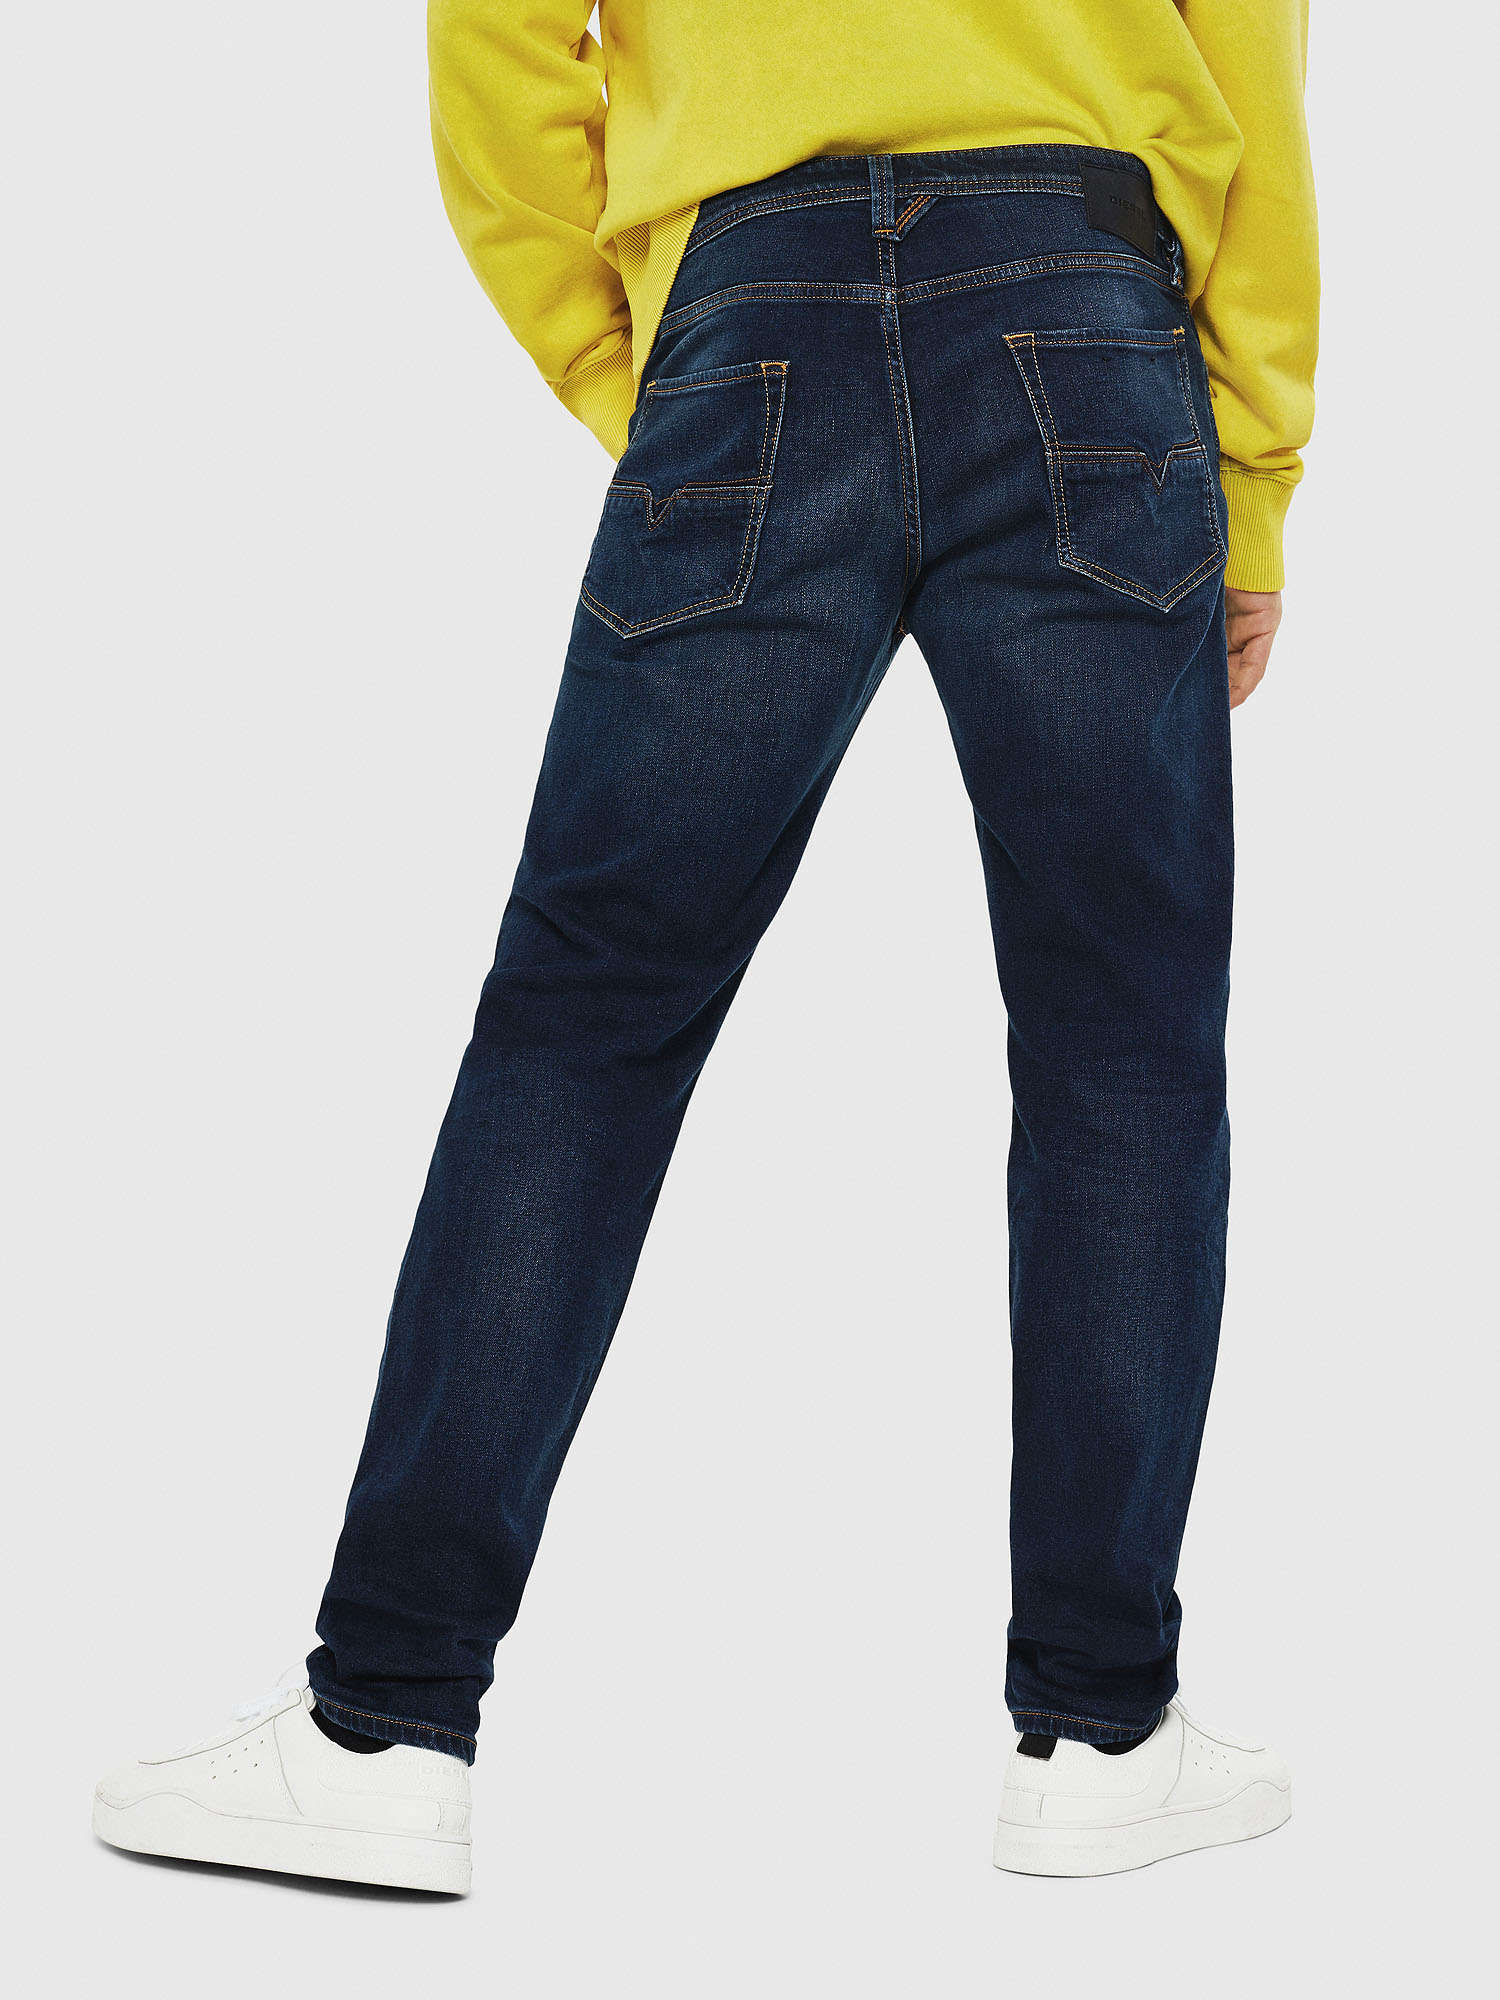 Diesel - Larkee-Beex 087AS,  - Jeans - Image 2